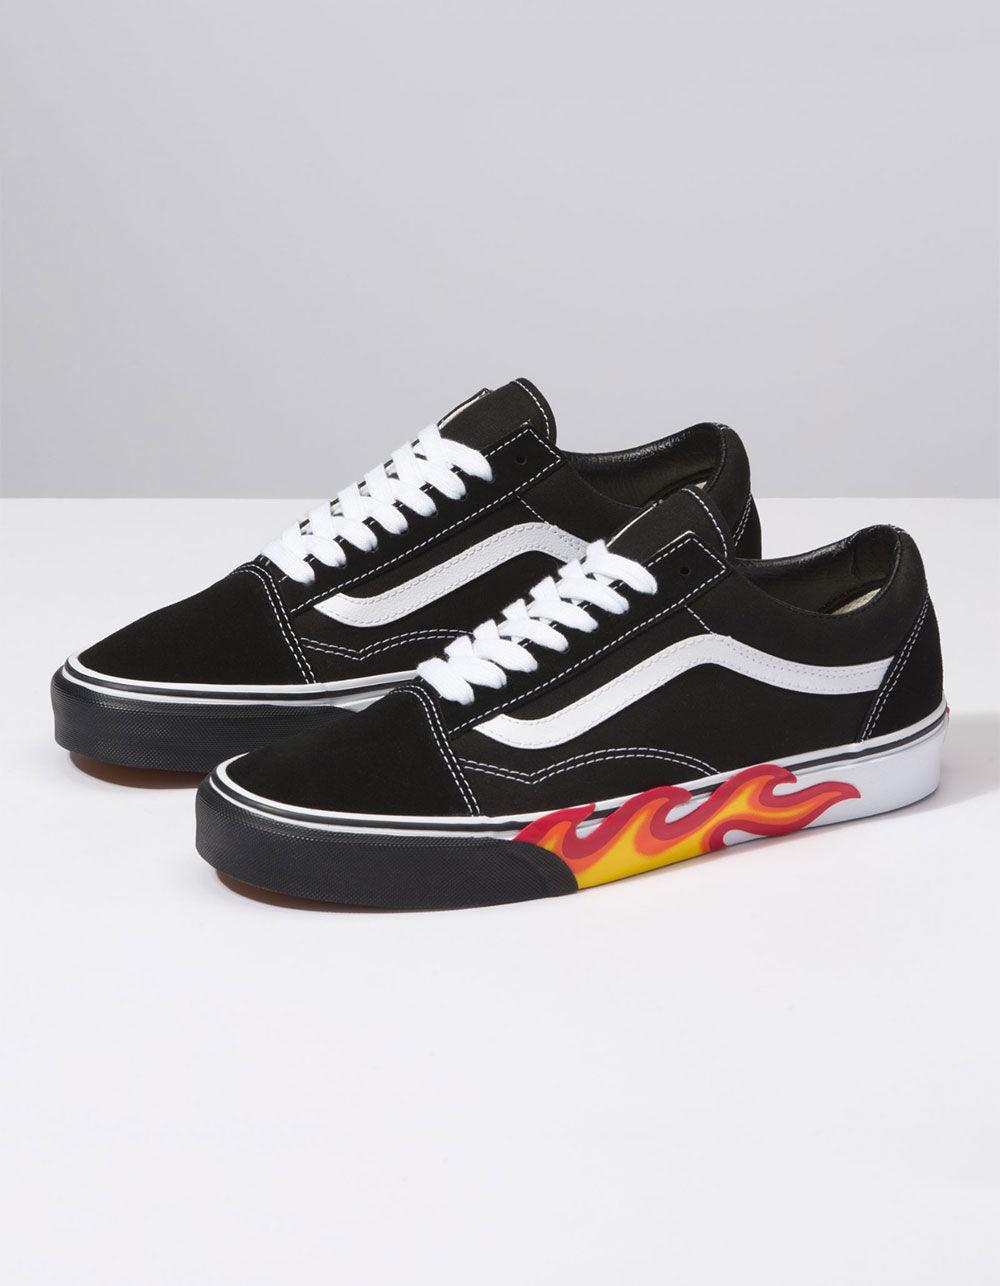 Lyst - Vans Flame Cut Out Old Skool Shoes in Black for Men 40c0aa687